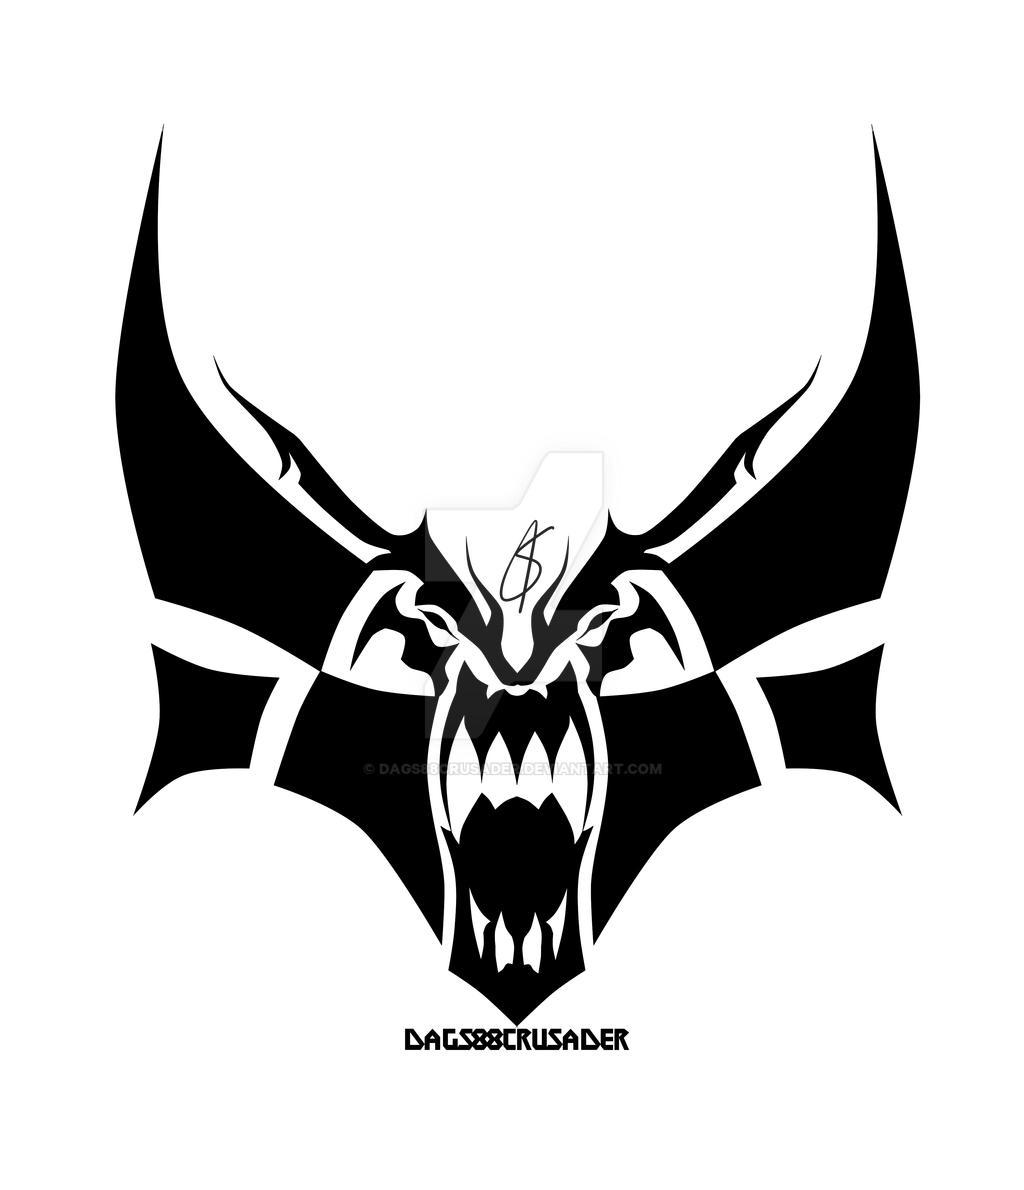 dags88crusader's Profile Picture